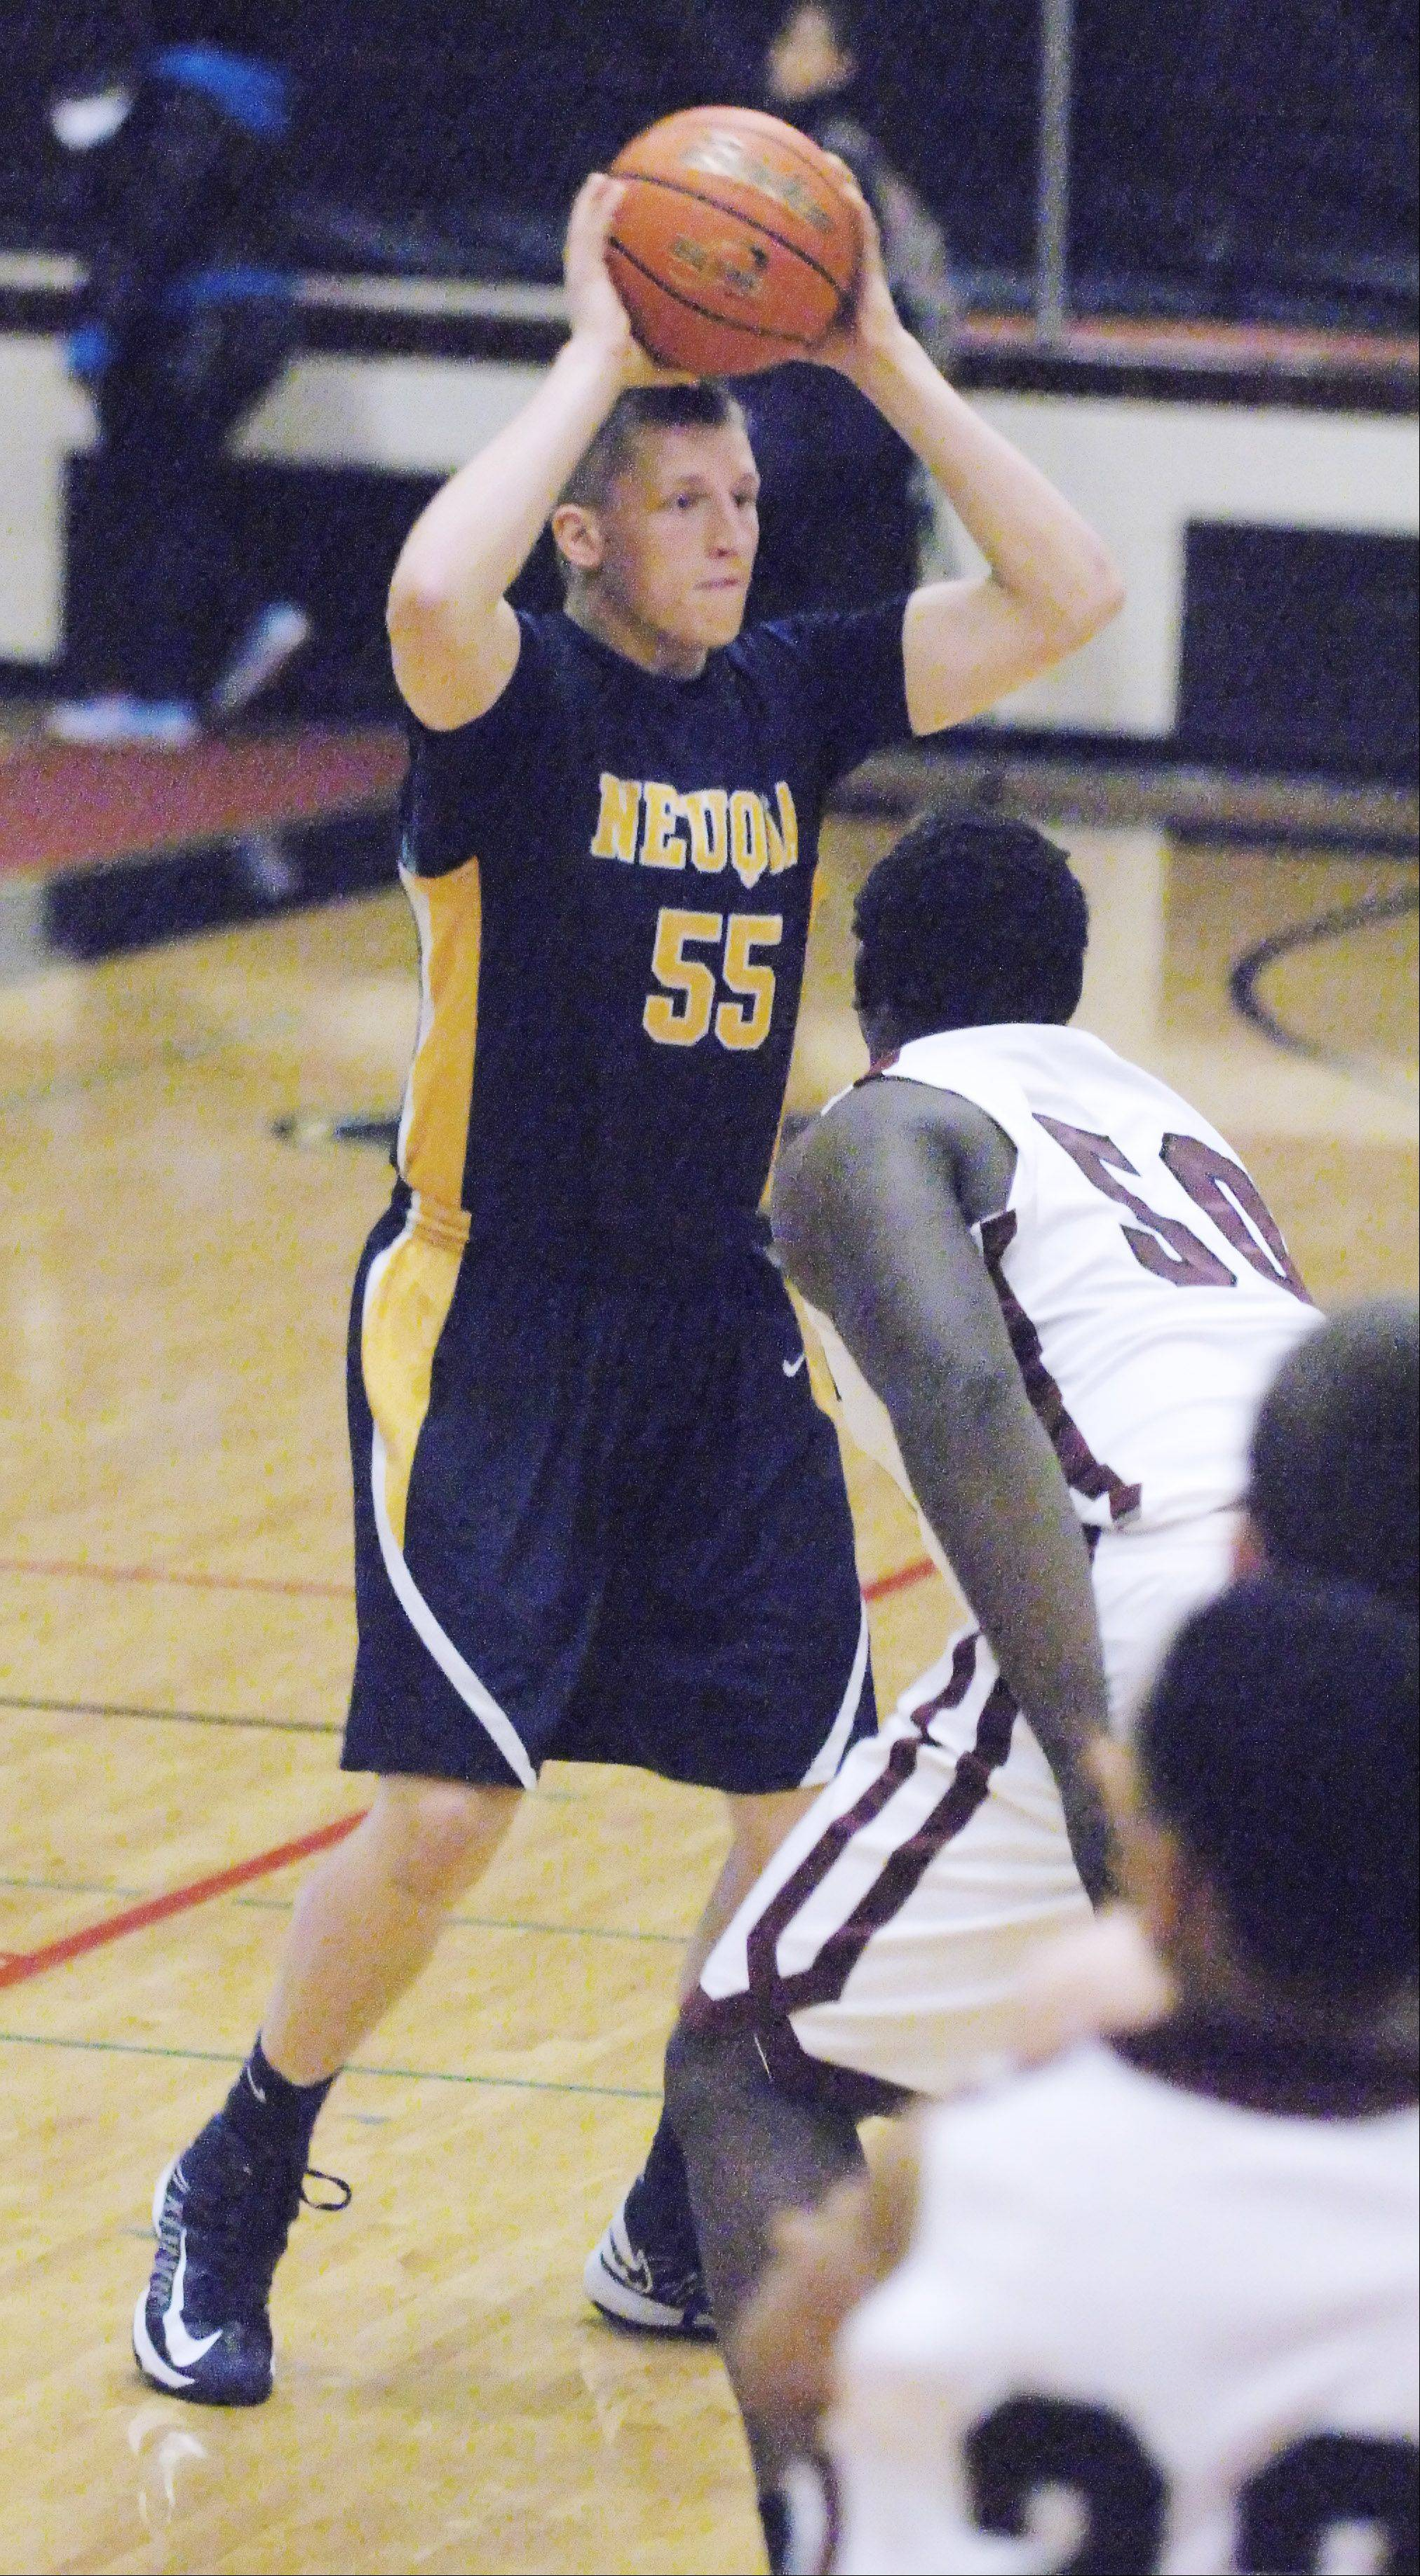 Images from the Neuqua Valley vs. Peoria Central boys basketball game in Aurora on Friday, Dec. 28, 2012.